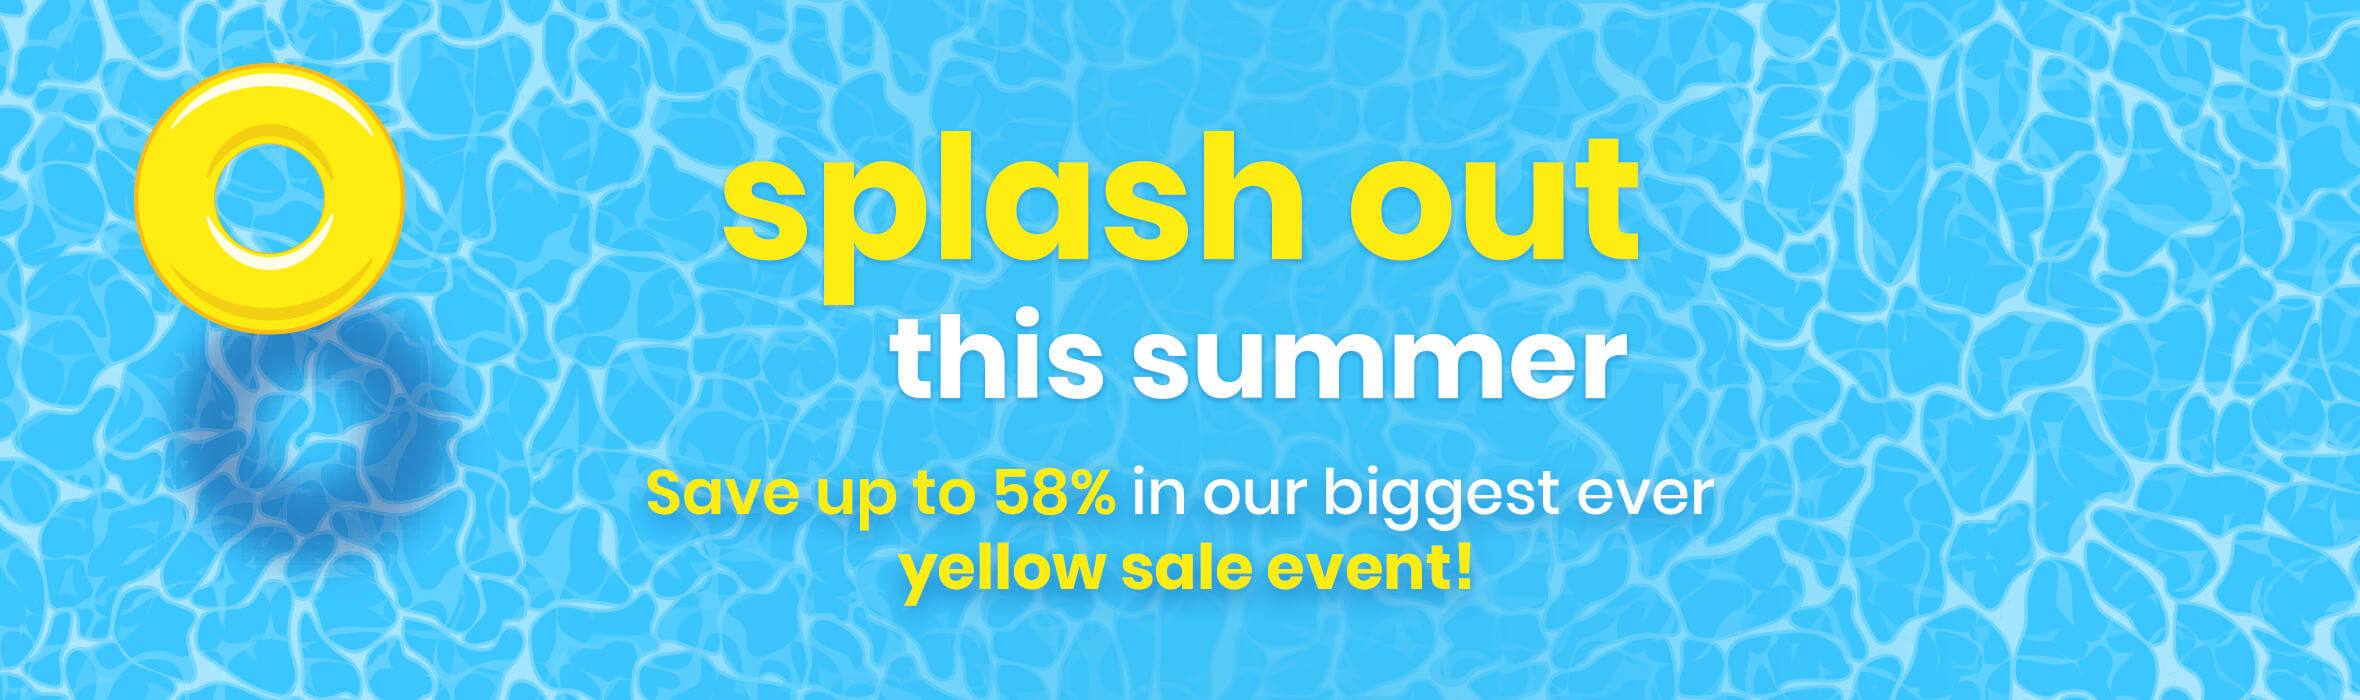 Save up to 58% in Our Biggest Ever Sale Event